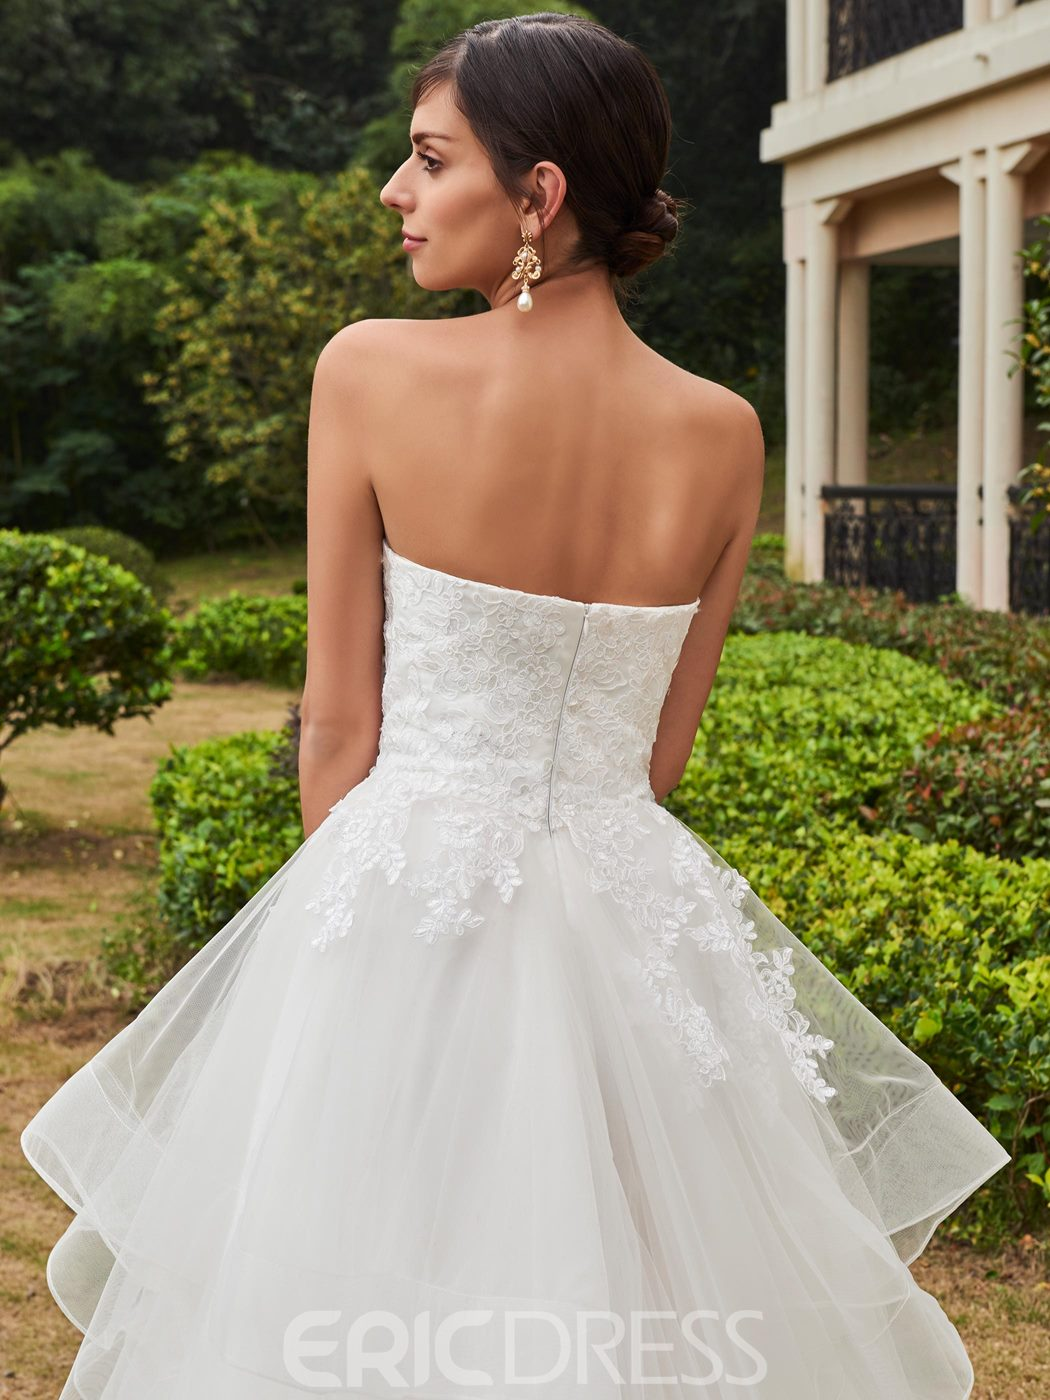 Ericdress High Quality Appliques Sweetheart A Line Garden Wedding Dress